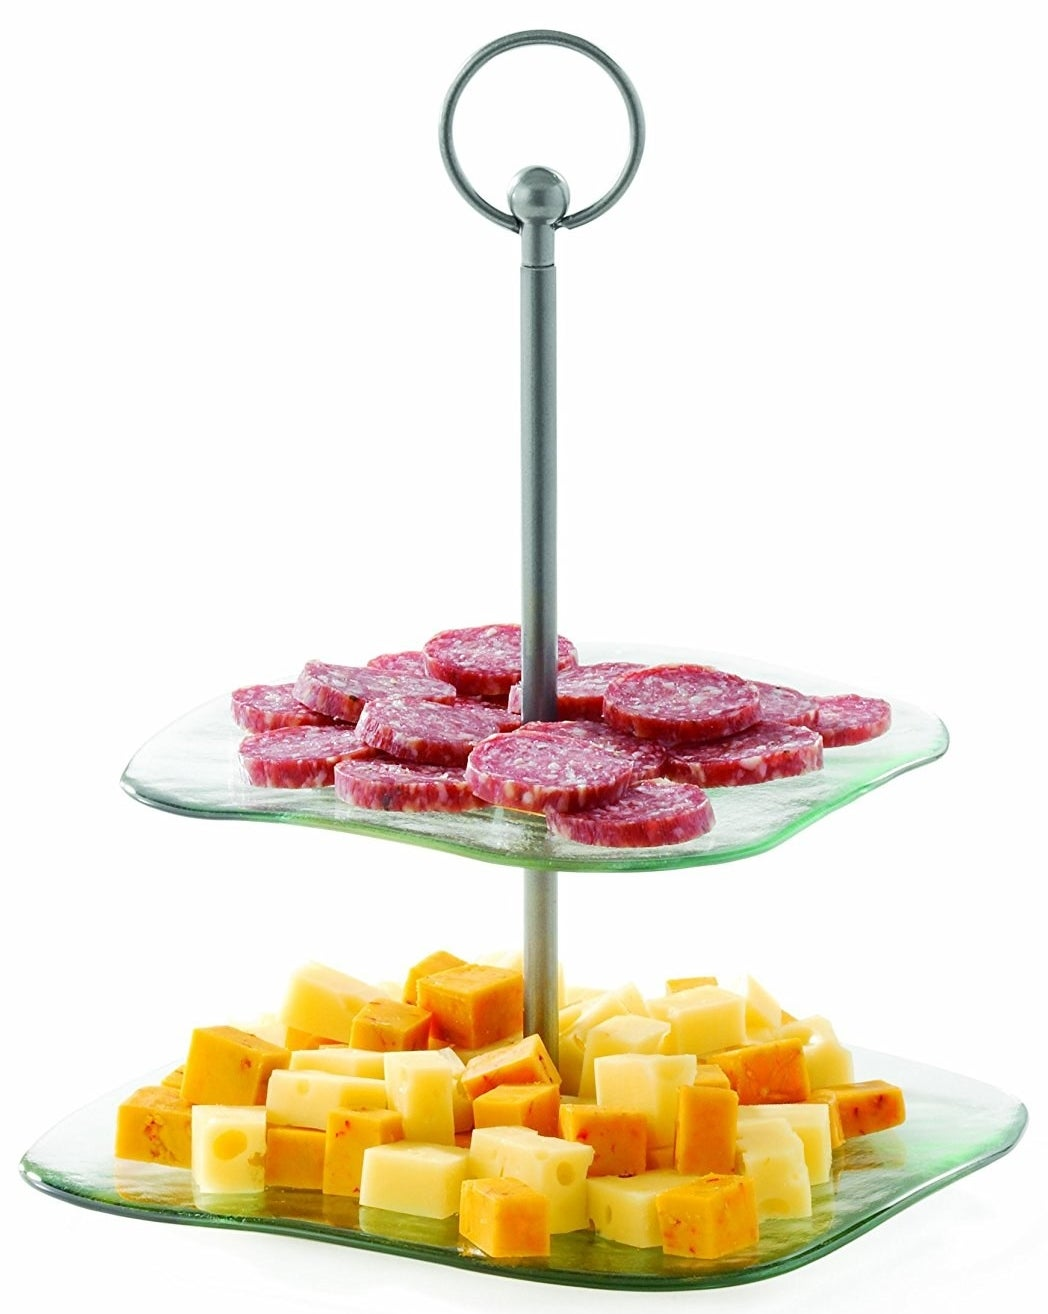 A two-tiered serving tray with a steel rod for easy handling and is made from recycled glass.